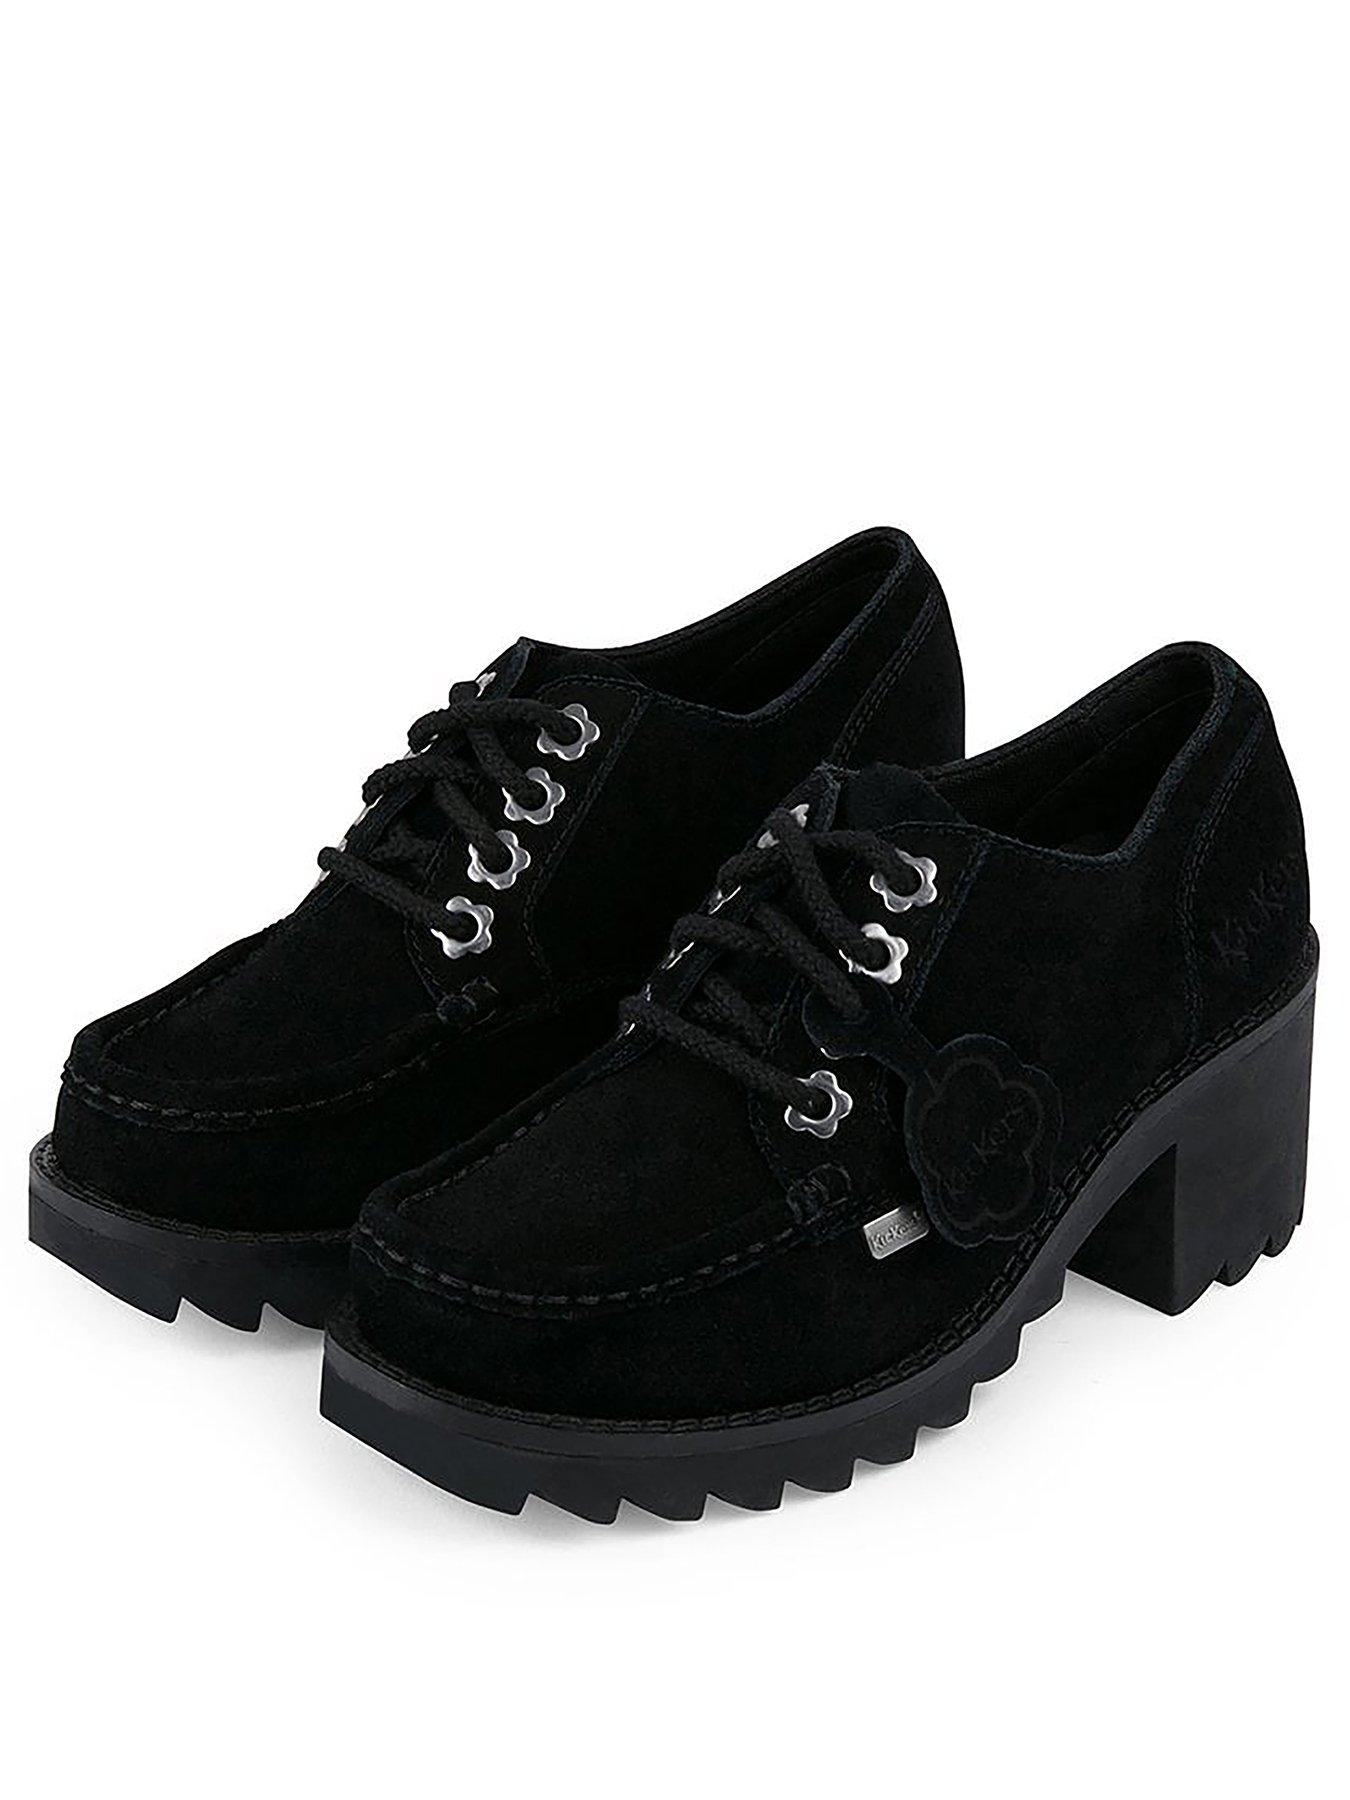 Boys Teenage School Shoes NEW Young Adult Black Smart Uniform Leather All Size